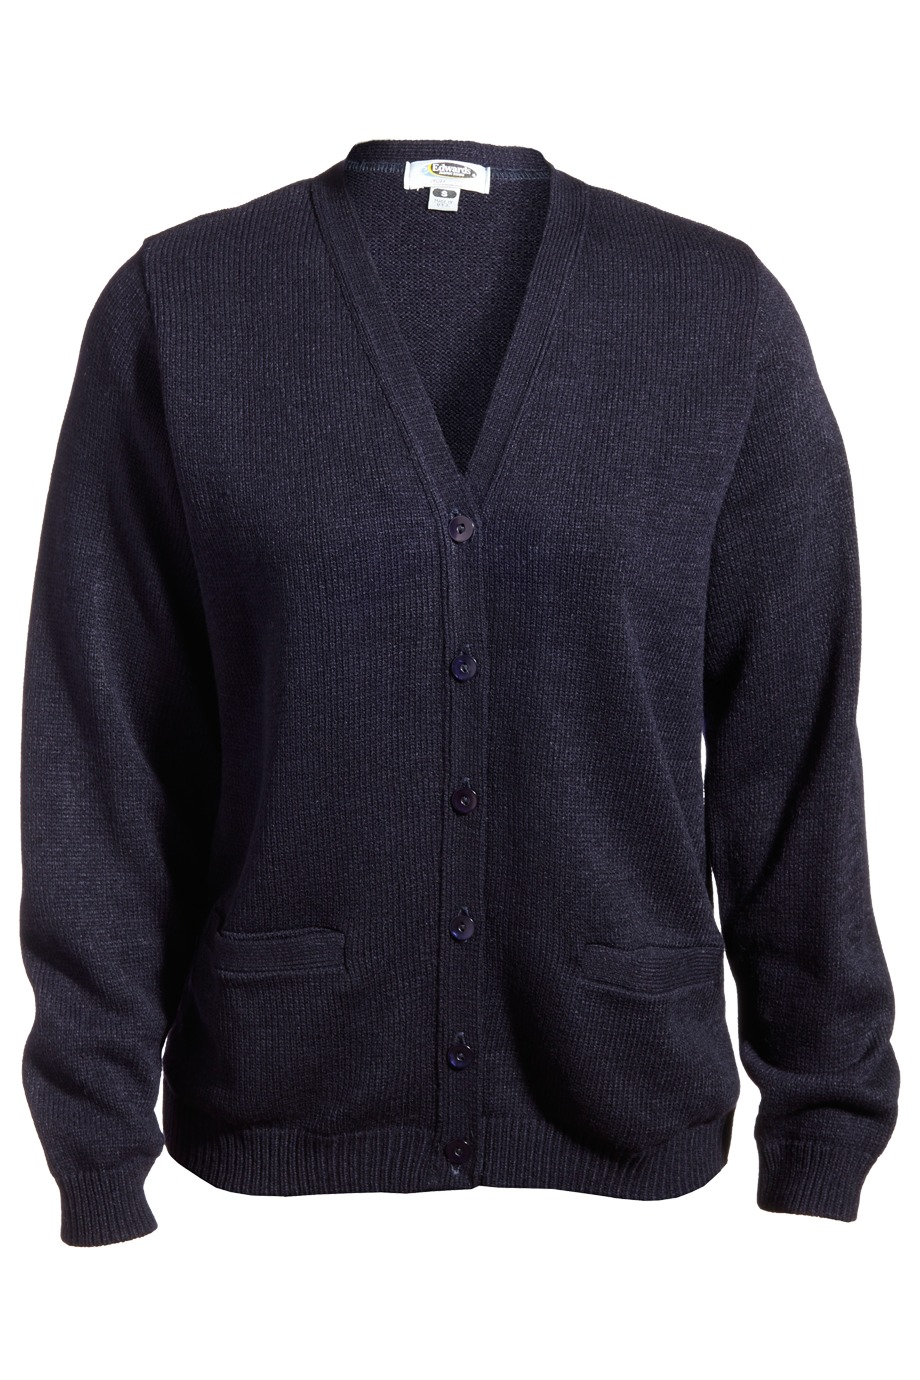 Edwards Garment 450 - Women's V-Neck Pocket Cardigan